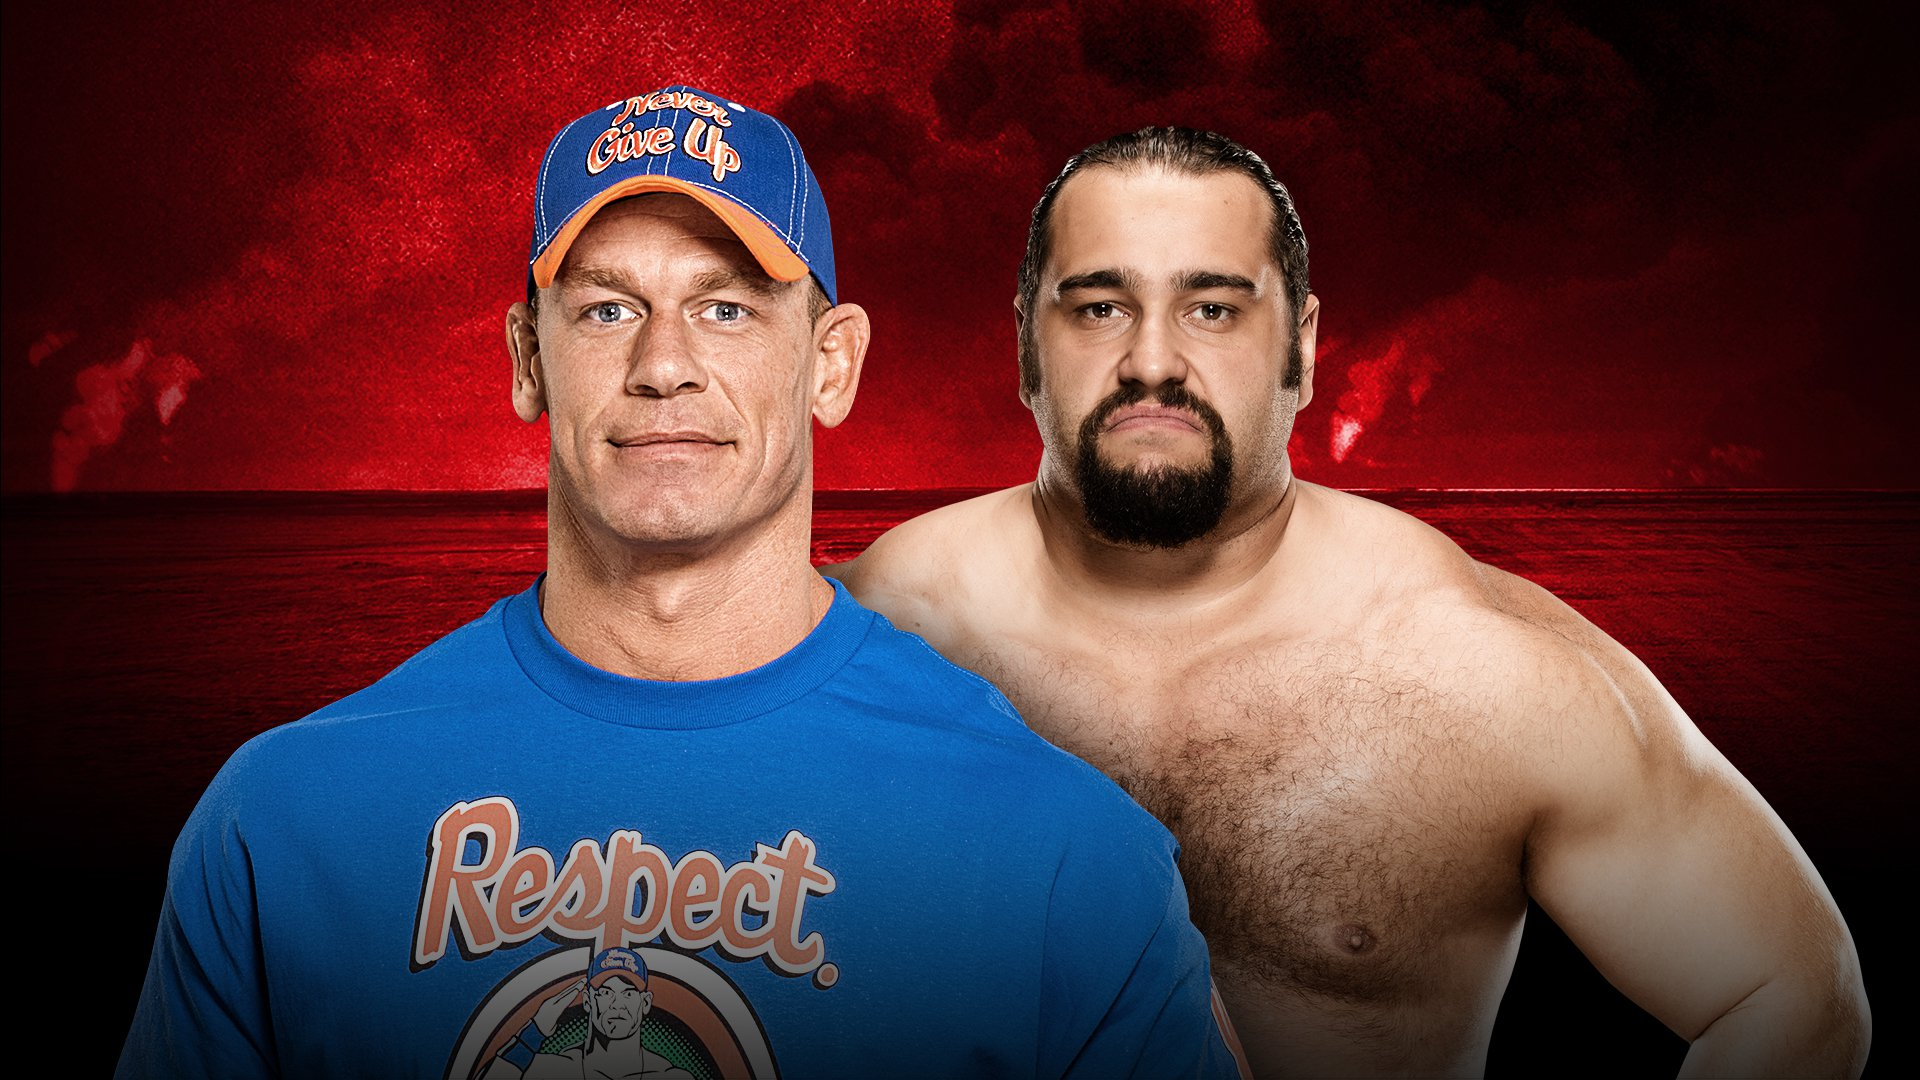 WWE Battleground 2017: John Cena vs. Rusev